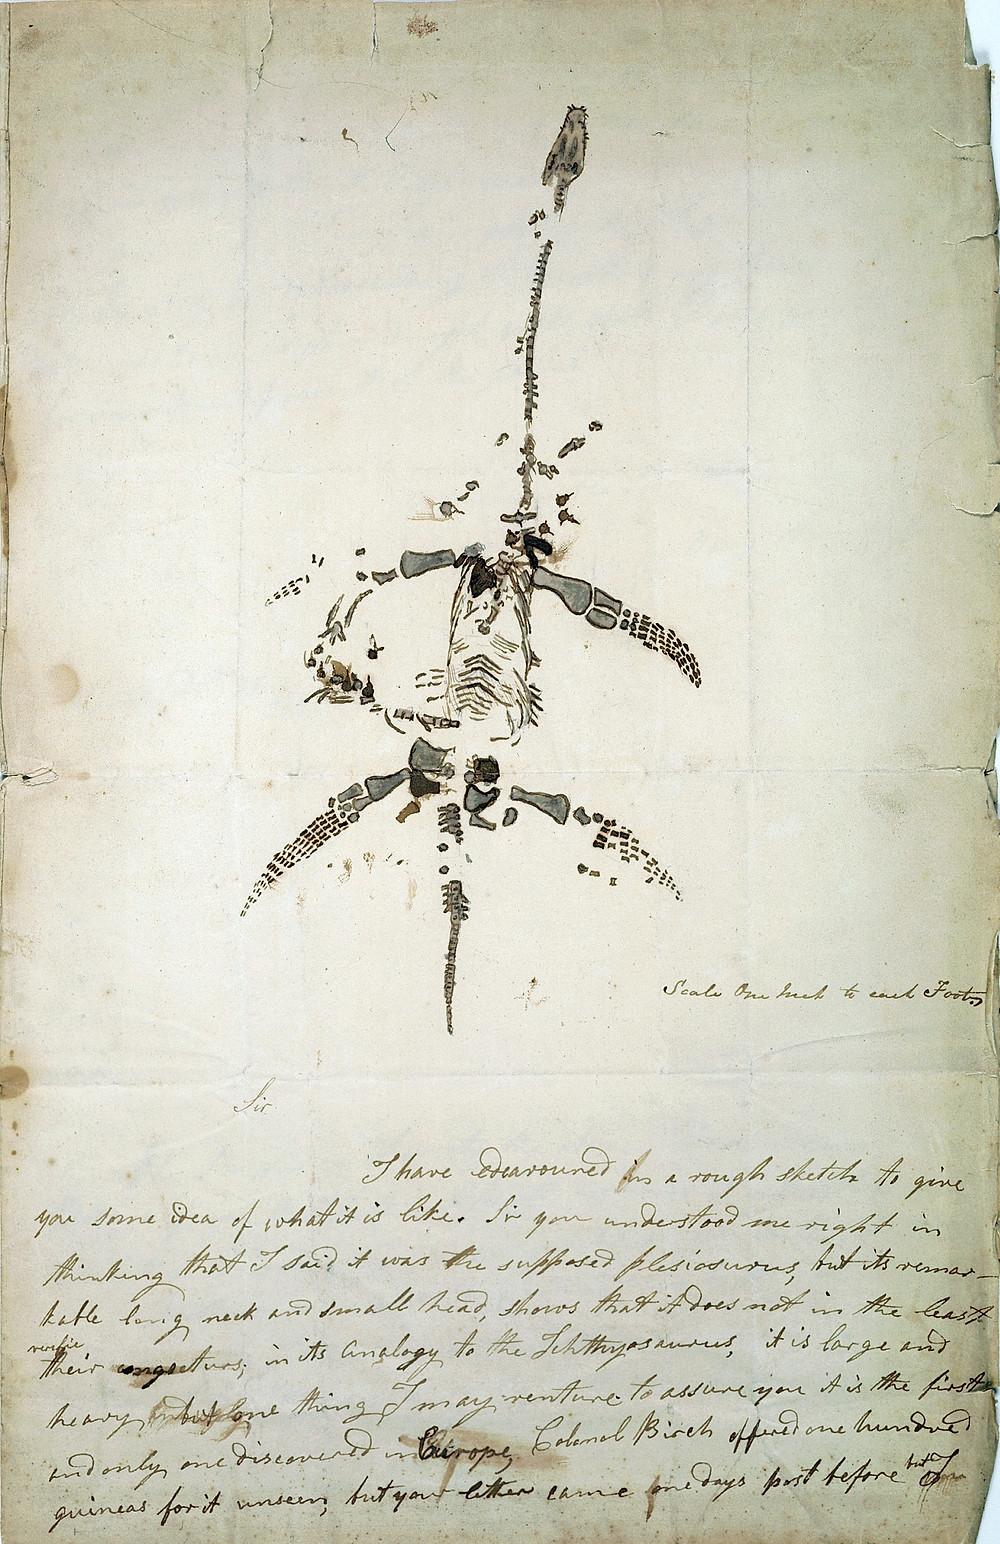 Letter and ink drawing by Anning of  the plesiosaurus, December 1923.